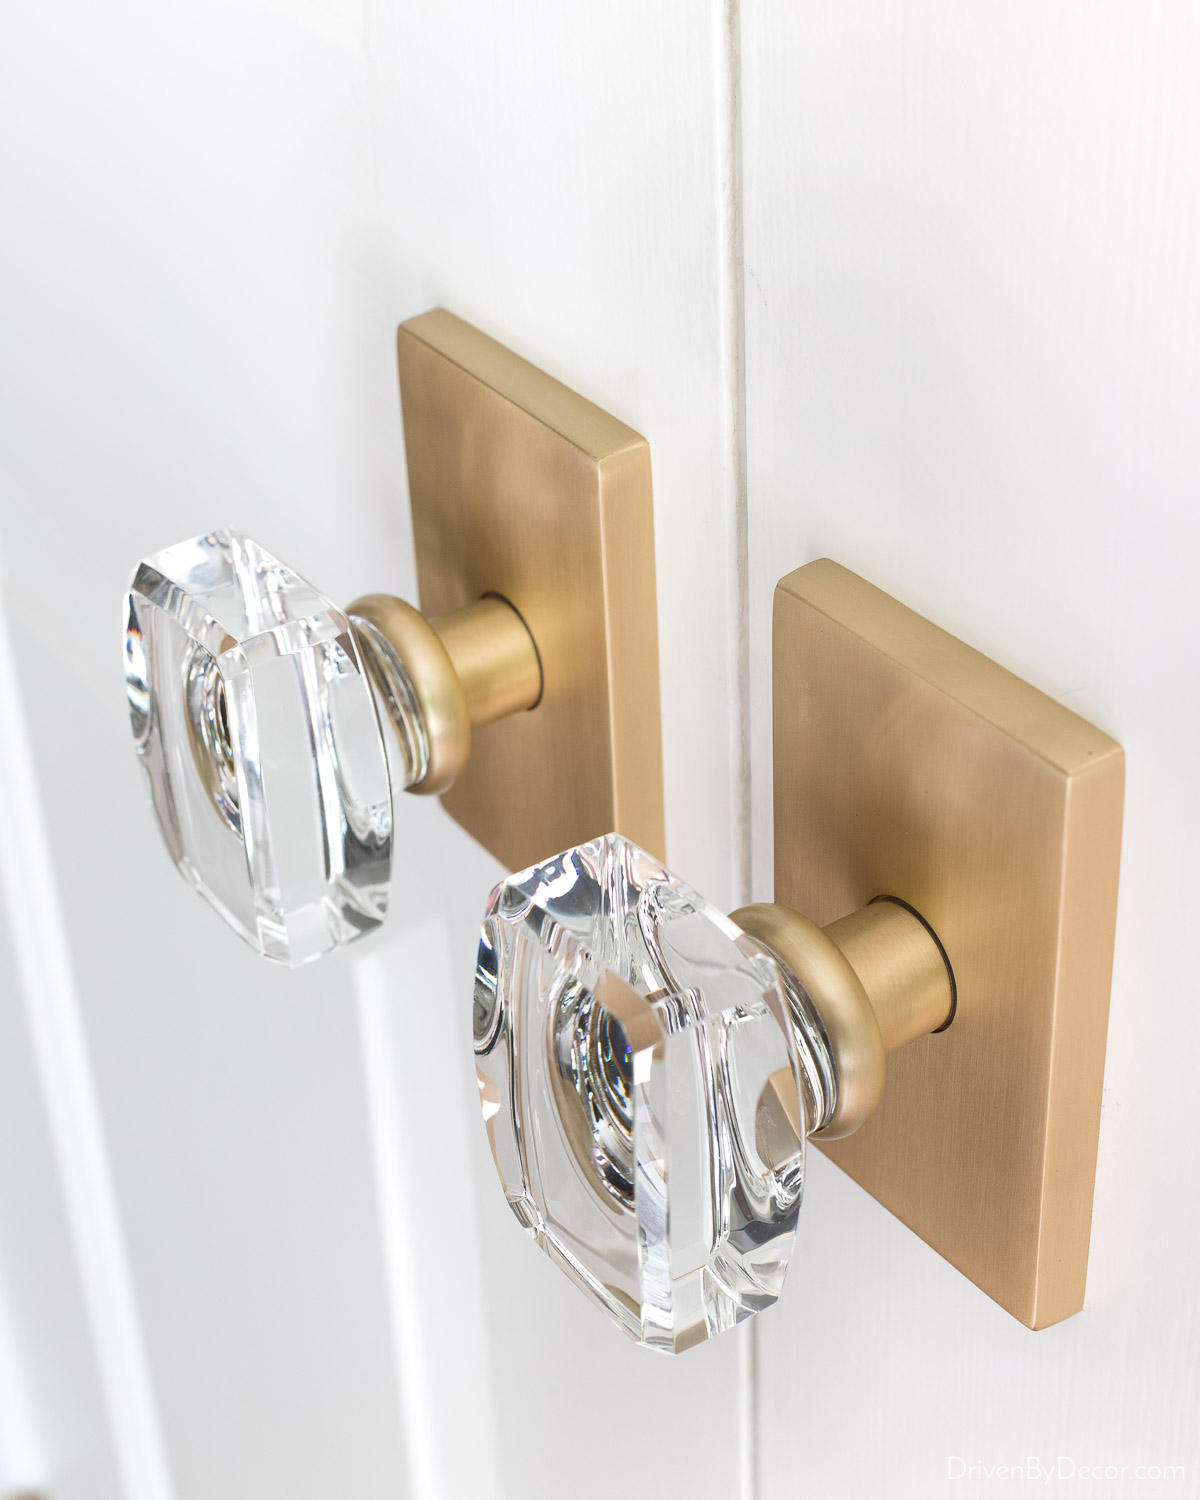 A favorite home remodeling idea is to replace dated knobs and freshen up your doors with a new coat of paint!